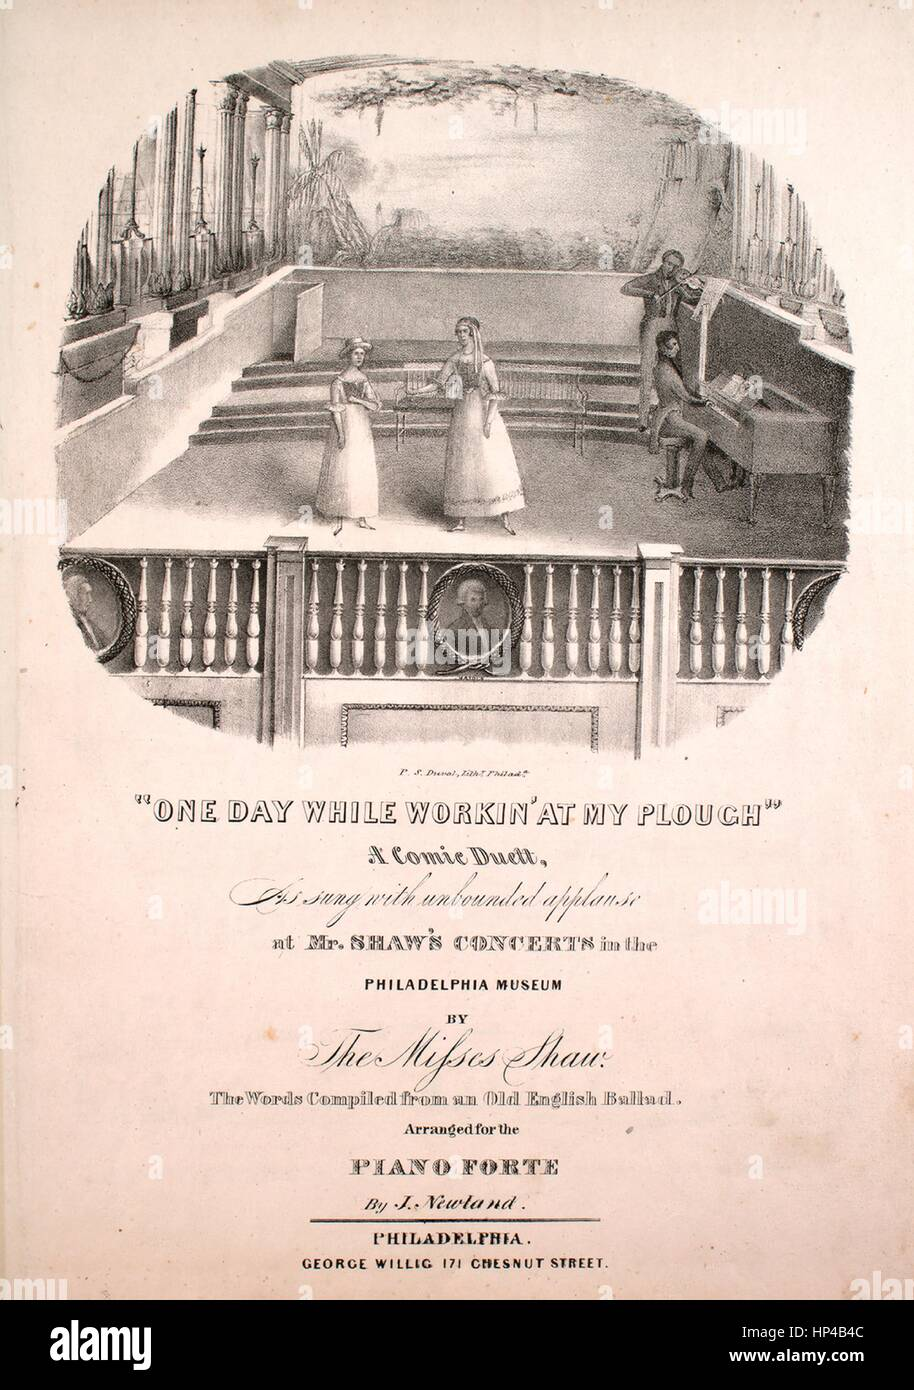 Sheet music cover image of the song 'One Day While Workin' at My Plough A Comic Duett', with original - Stock Image